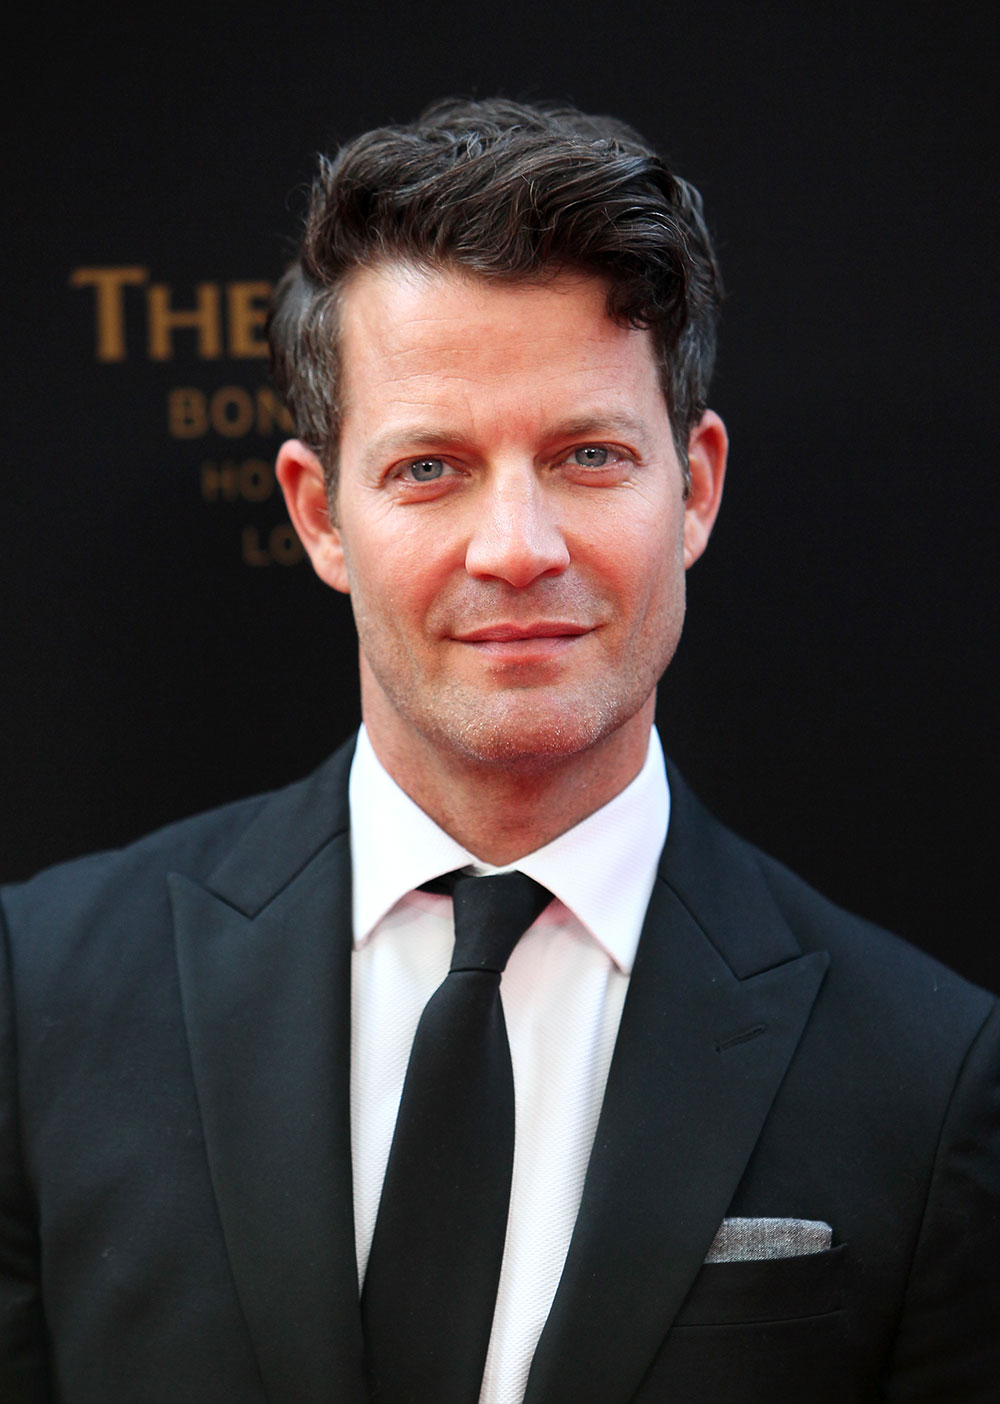 Take A Tour Of Nate Berkus S House That S Now On The